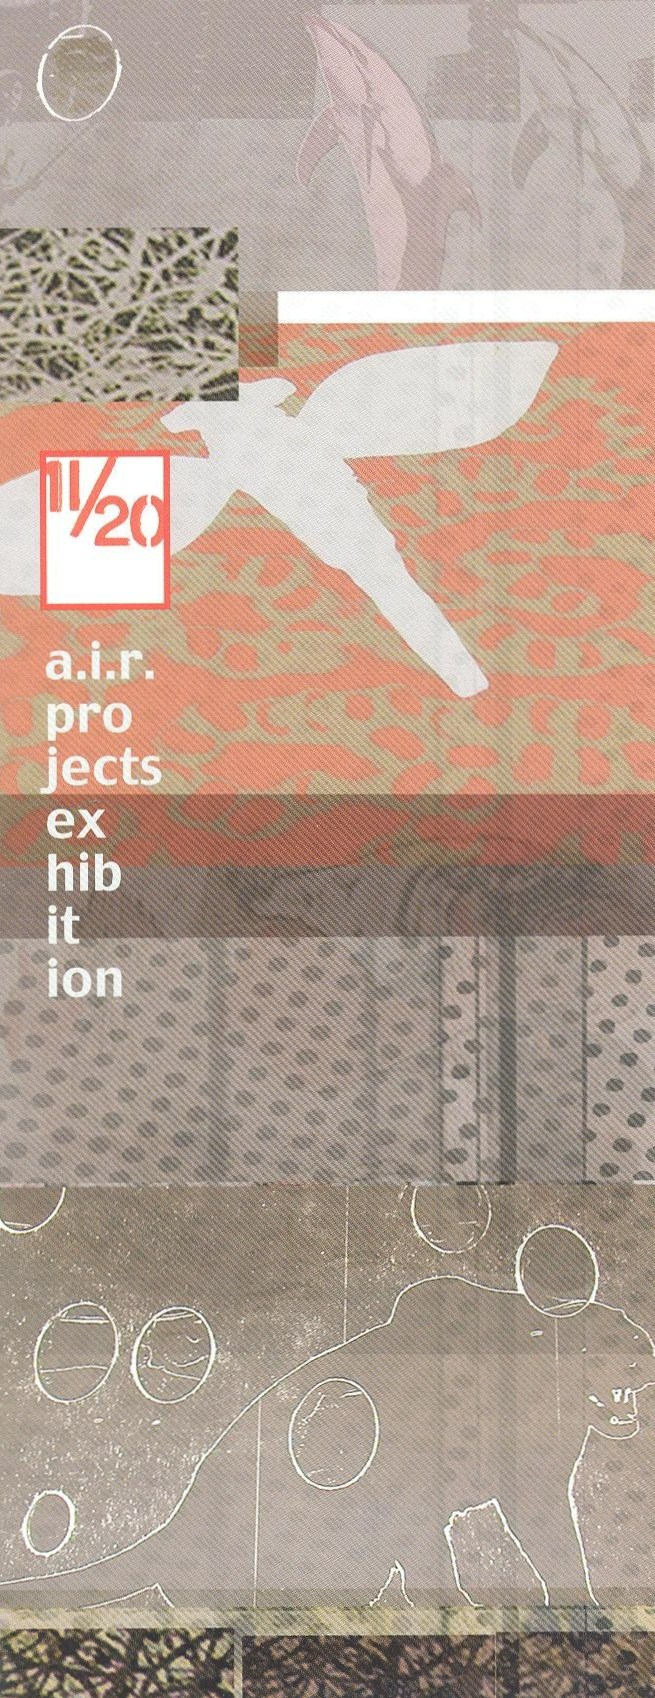 a.i.r exhibition1 001.jpg